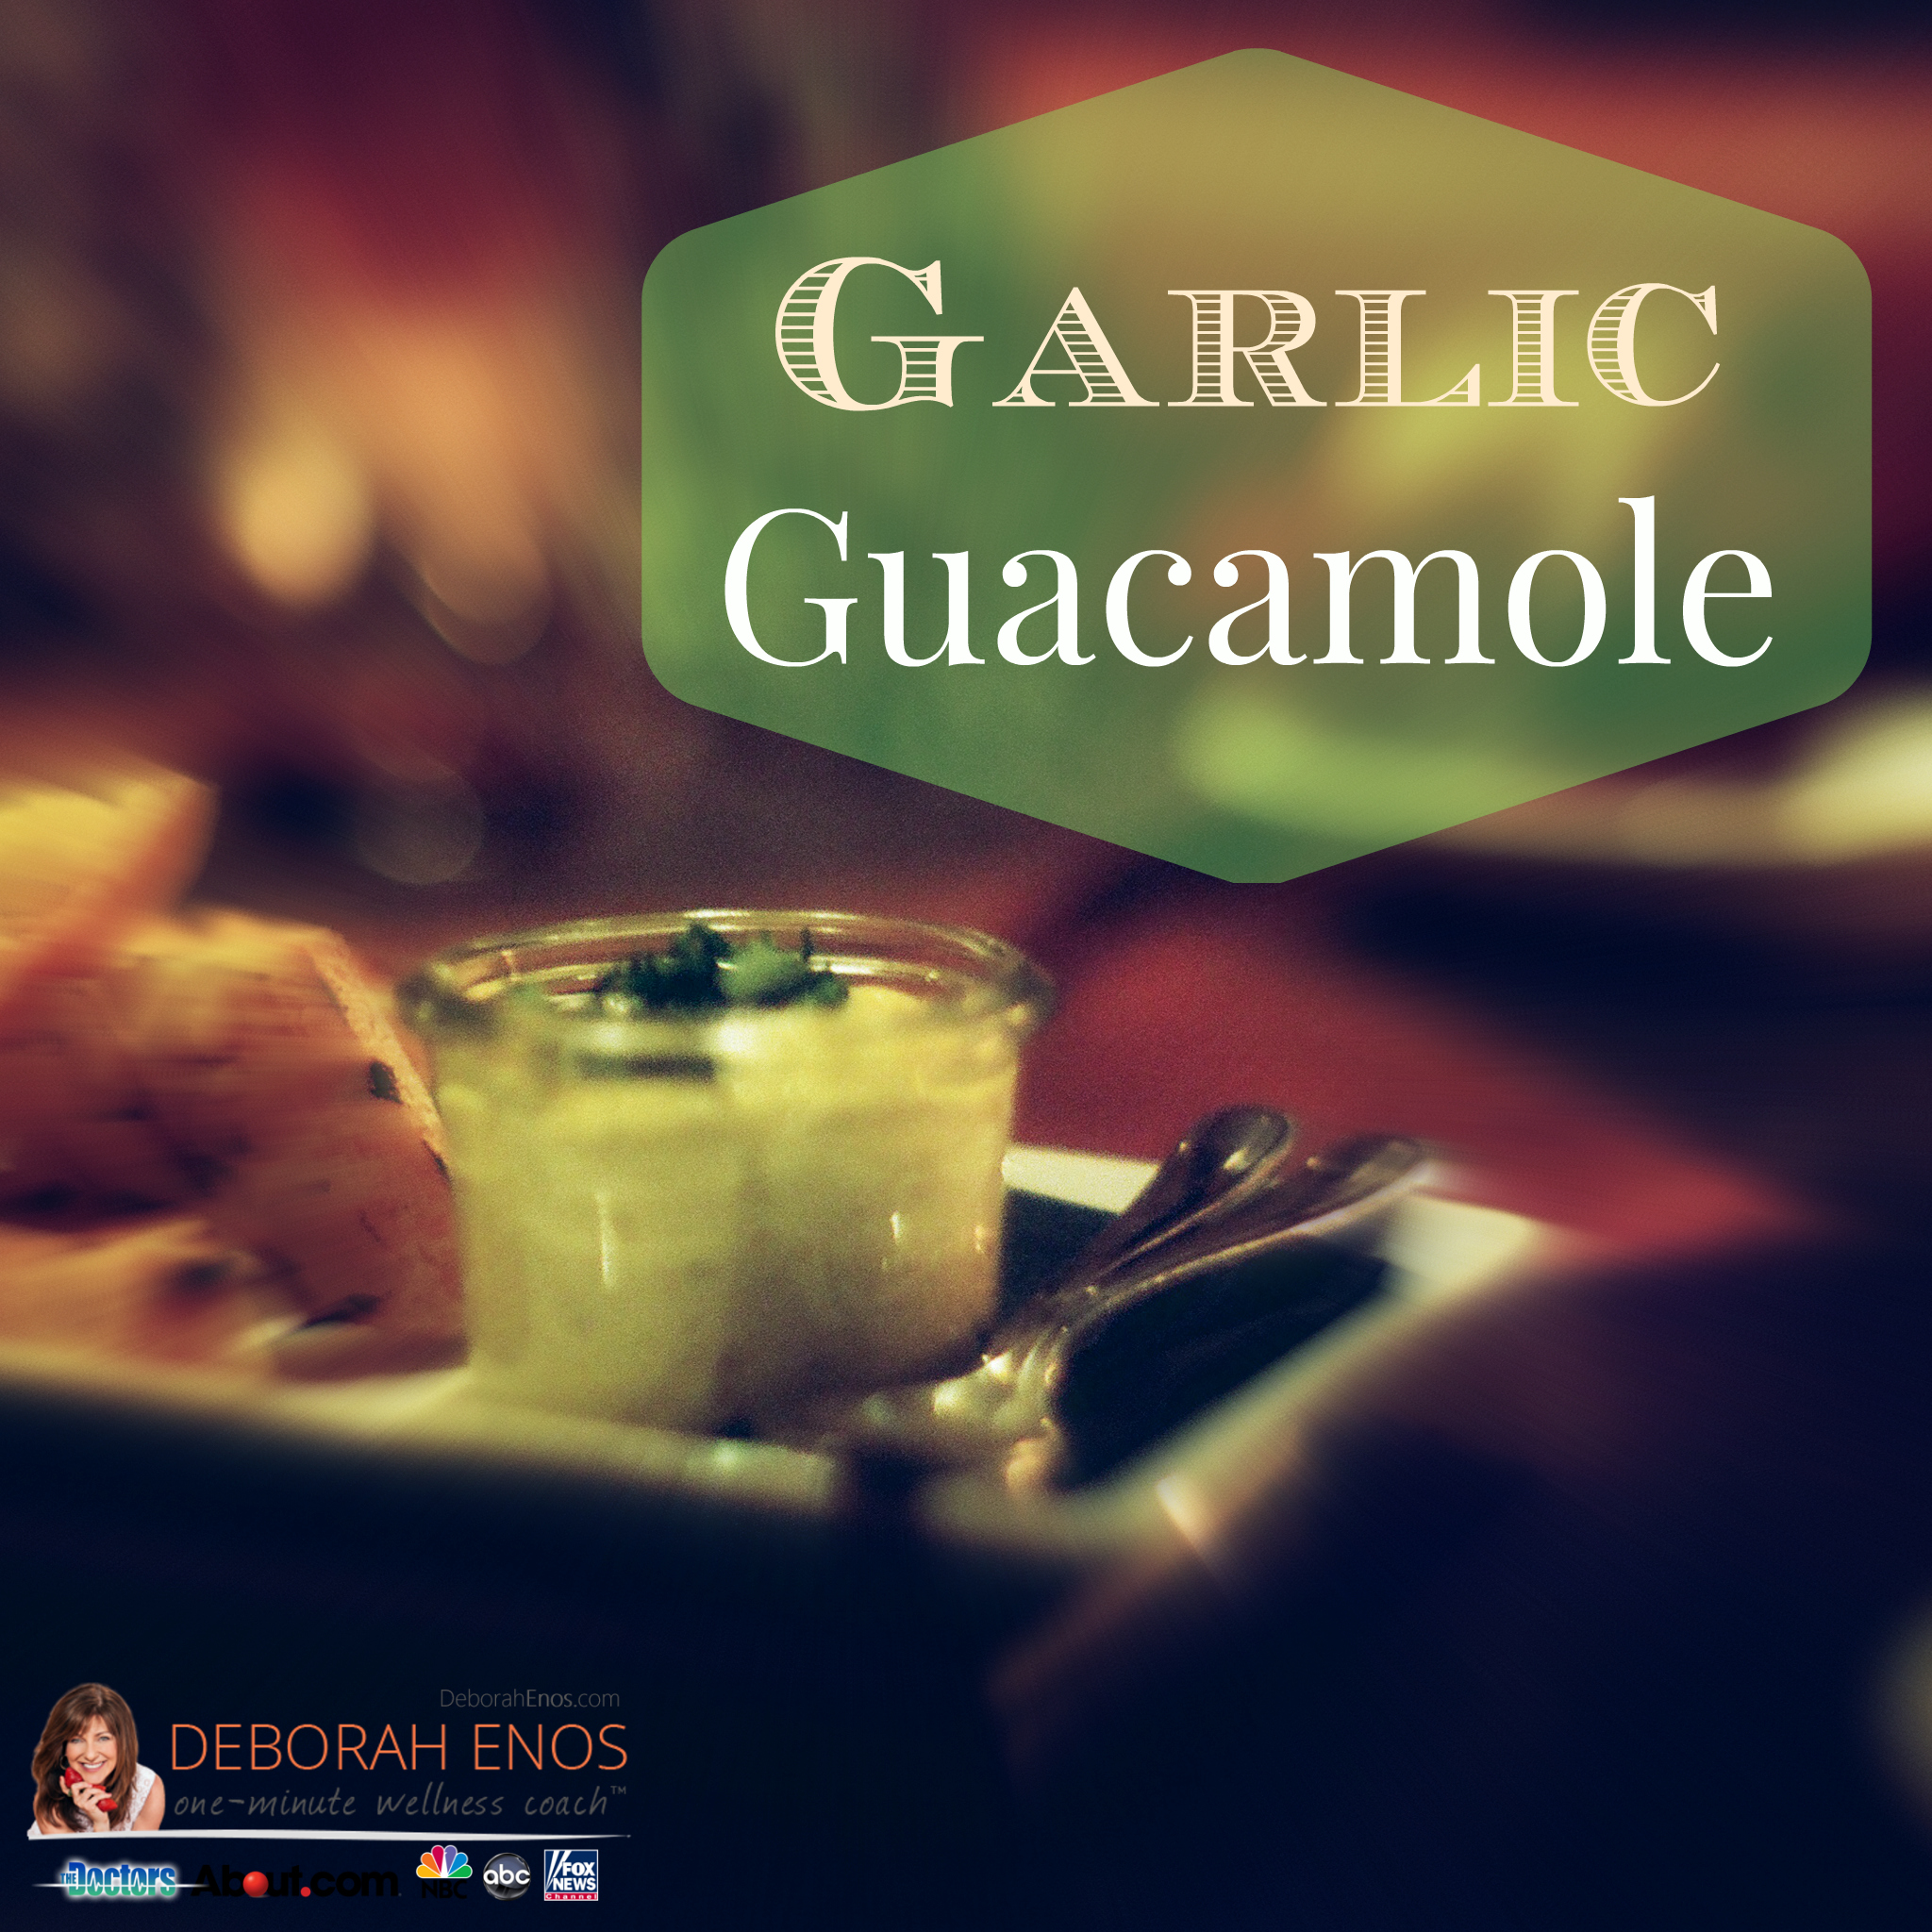 garlic guacamole recipe healthy pregame football snacks